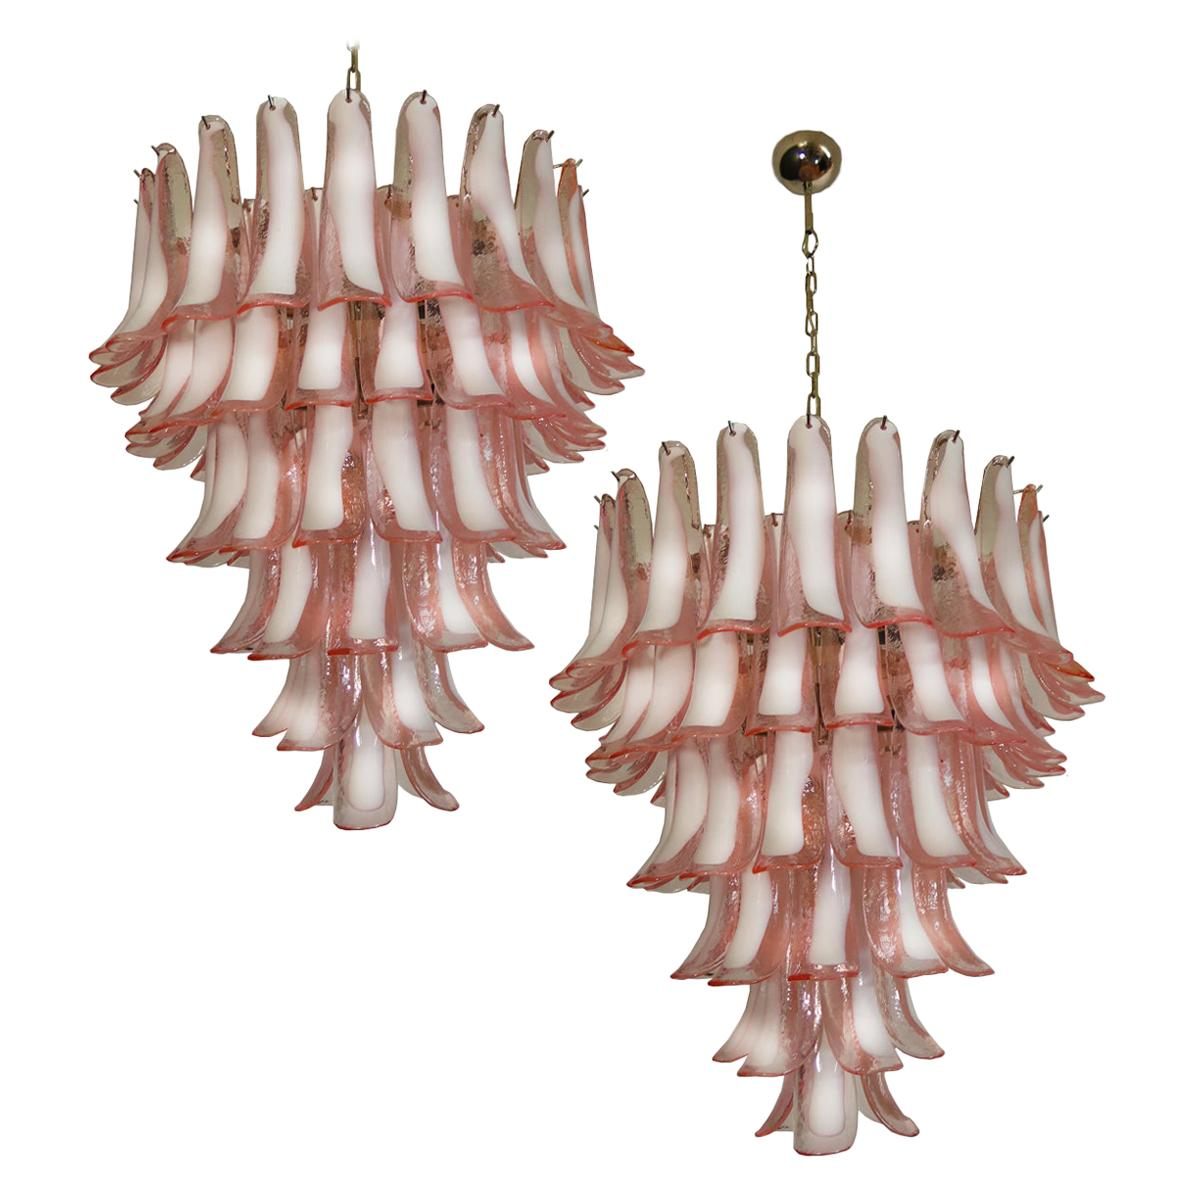 Pair of Italian Petals Murano Chandeliers